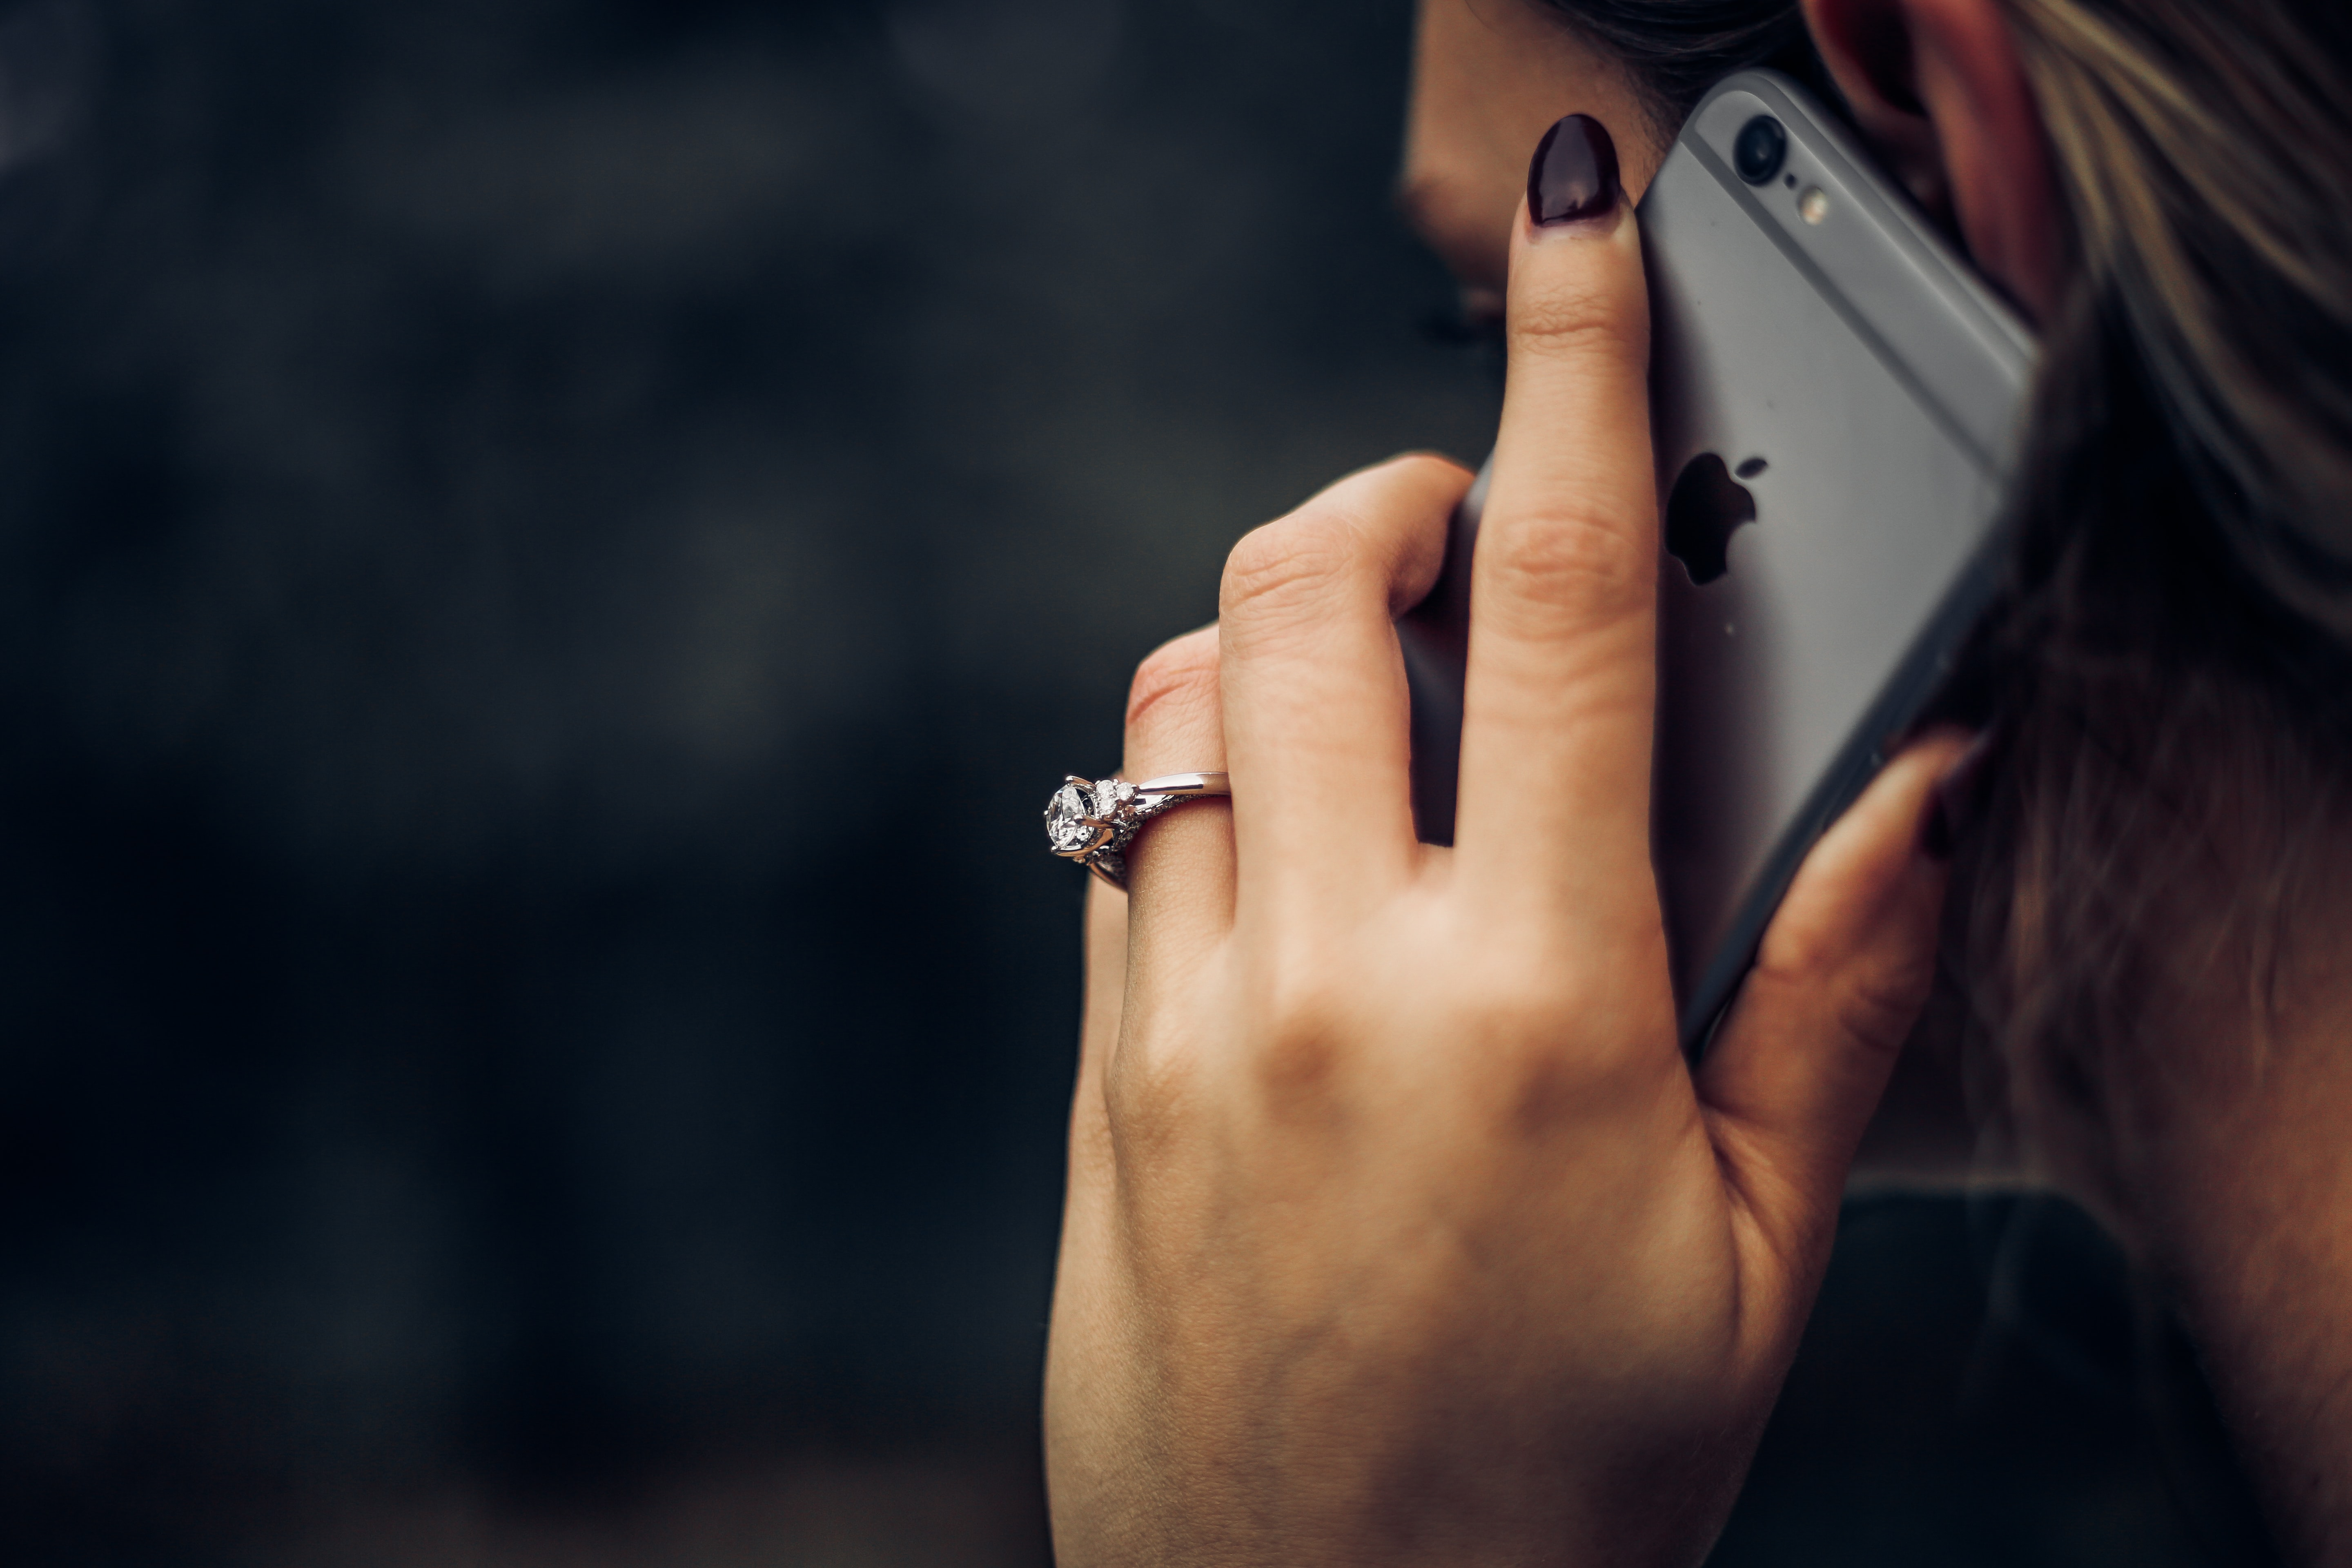 Co-Parenting with a Toxic Ex - How Often Should Co-Parents Communicate?